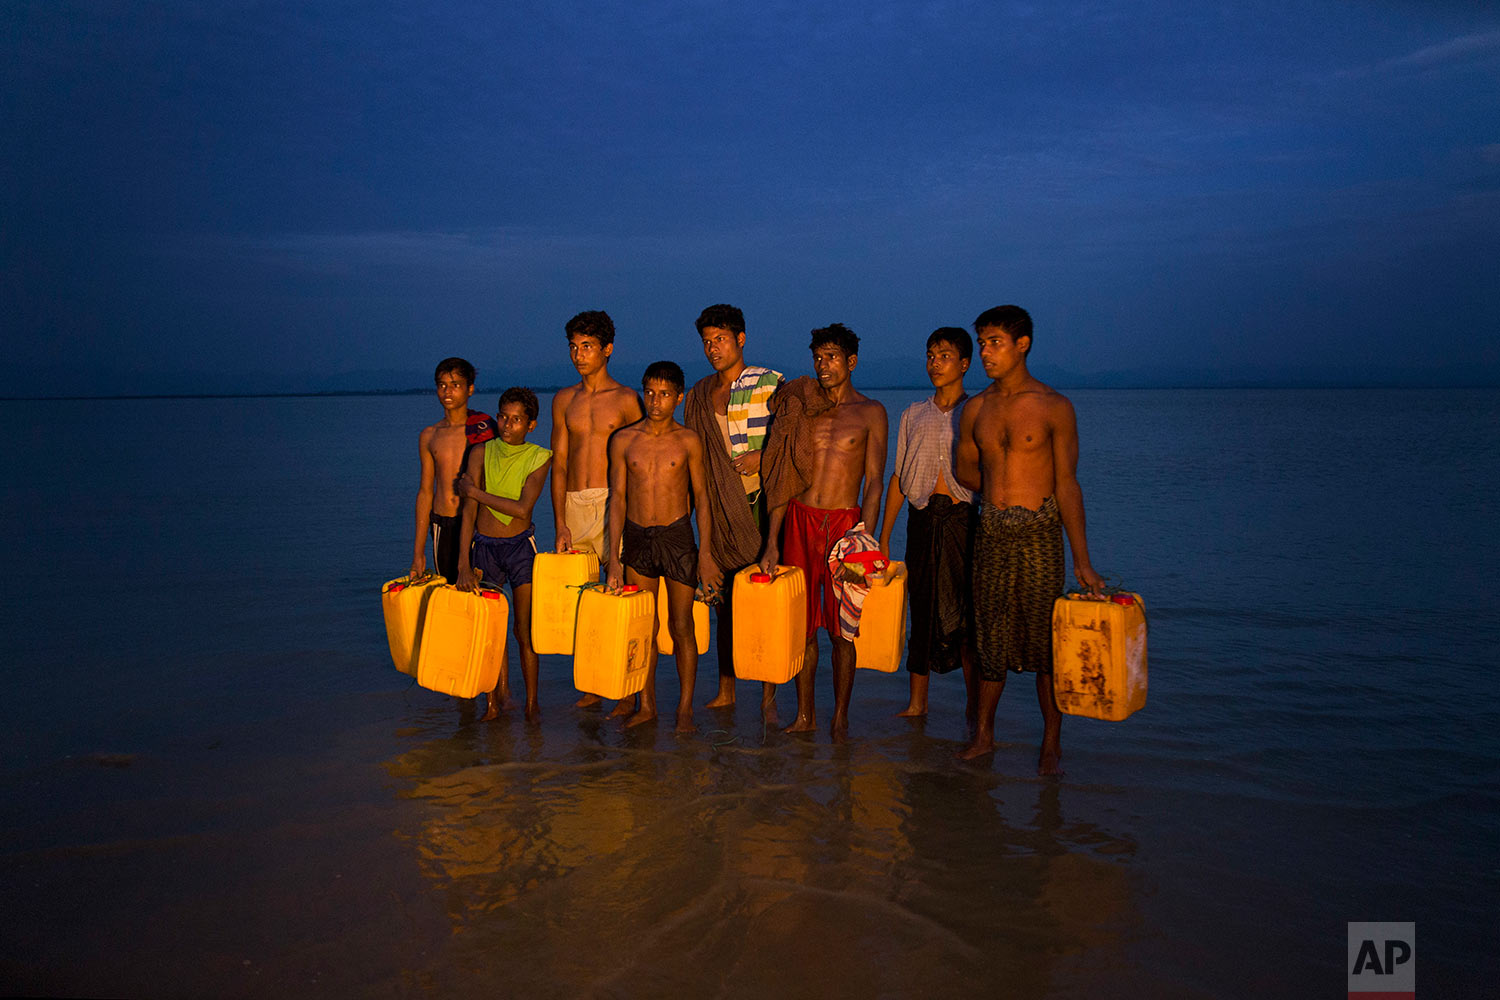 In this Nov. 5, 2017, photo, newly arrived Rohingya Muslims carry yellow plastic drums they used as flotation aids and listen to Bangladeshi authorities, not pictured, after swimming across the Naf river at Shah Porir Dwip, Bangladesh. (AP Photo/Bernat Armangue)